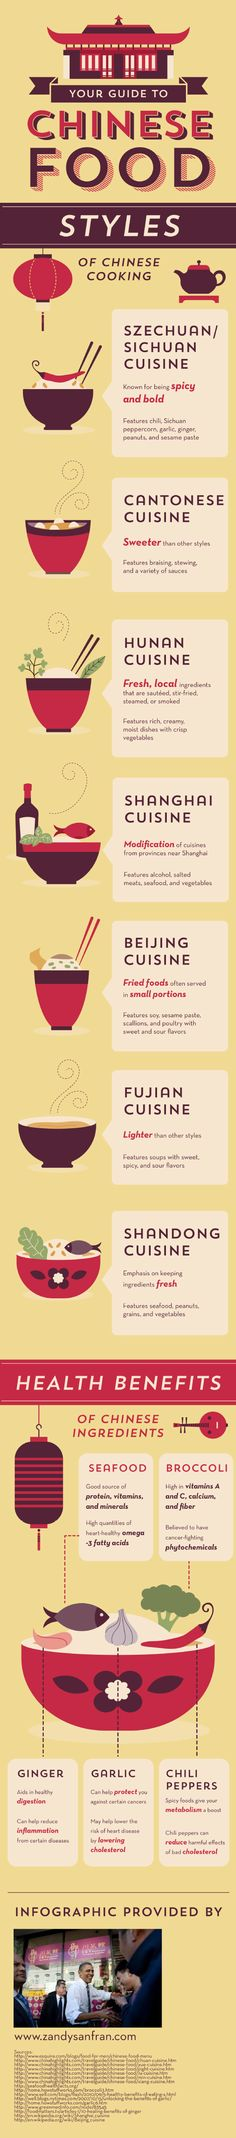 Chinese-Food-infographic.png (556×5039).  I would eat at this restaurant in a heart beat.  The menu is so interesting and very easy to follow.  Since you start at the top and work your way down, it makes it fun and easy to pick the most delicious meal that's to your liking!  The illustrations of the food are very nice too.